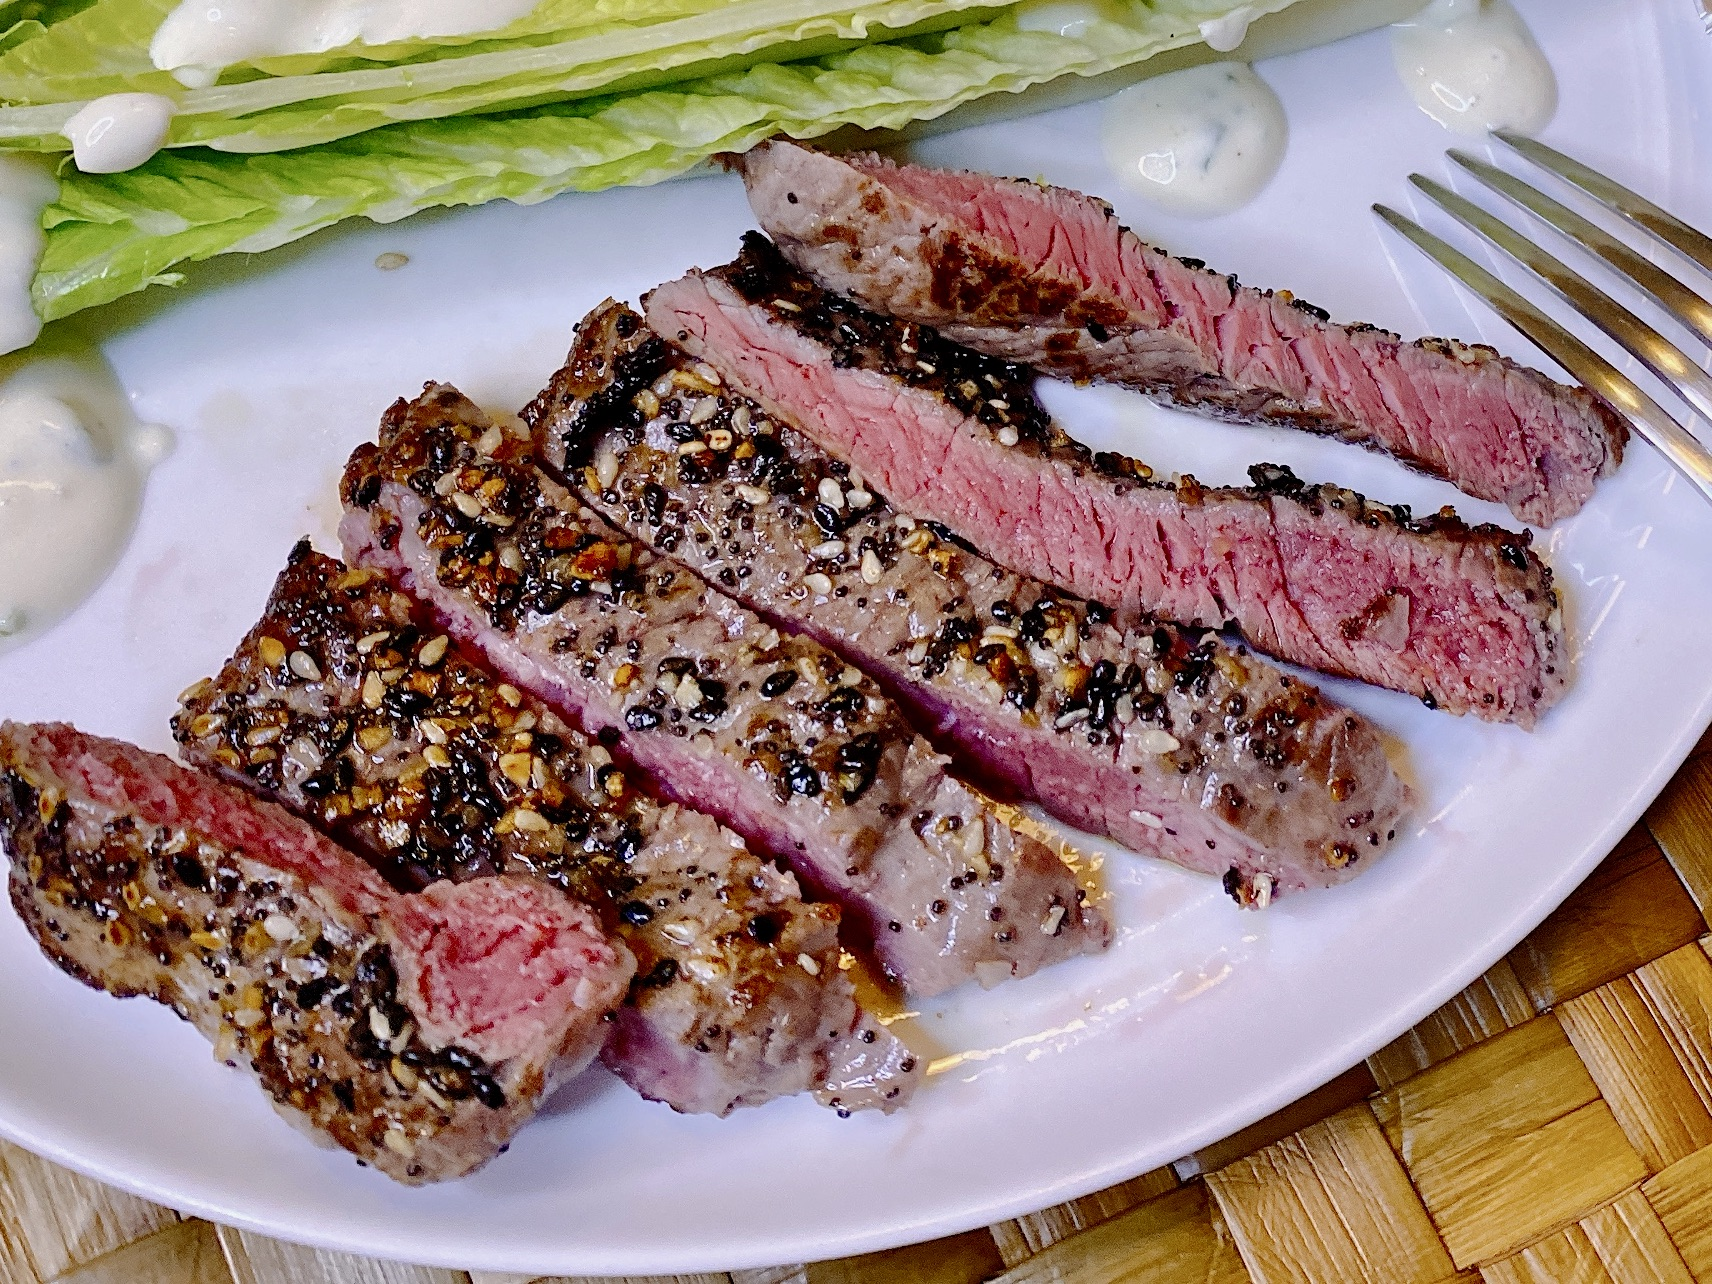 Recipe for Sirloin Steak with Everything Bagel Spice